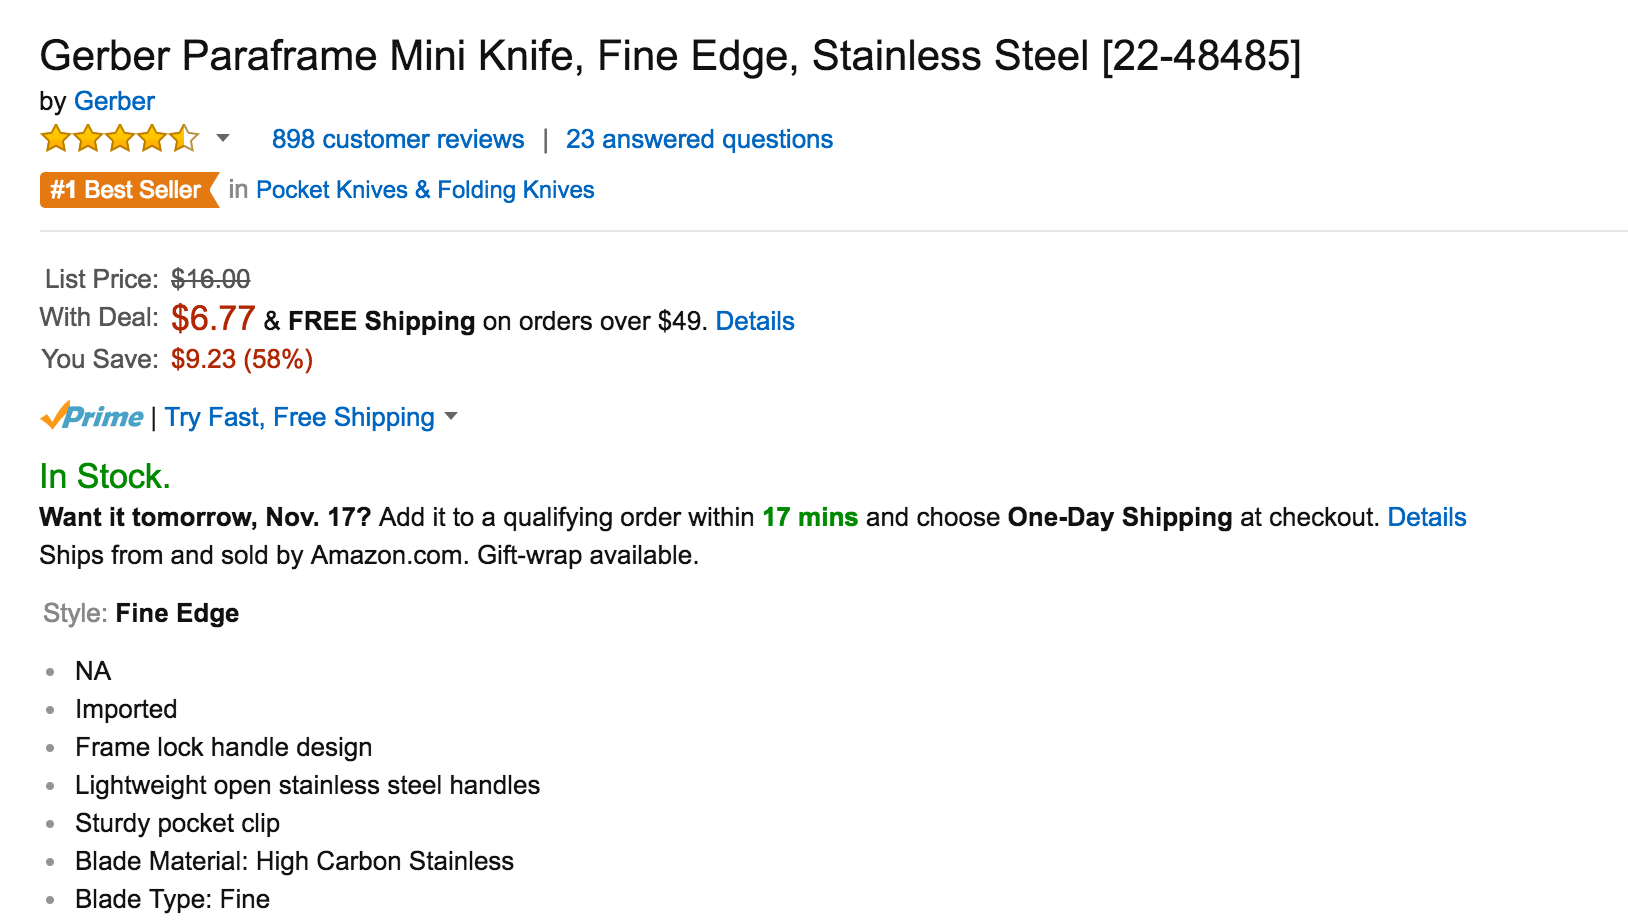 gerber-paraframe-mini-knife-fine-edge-2